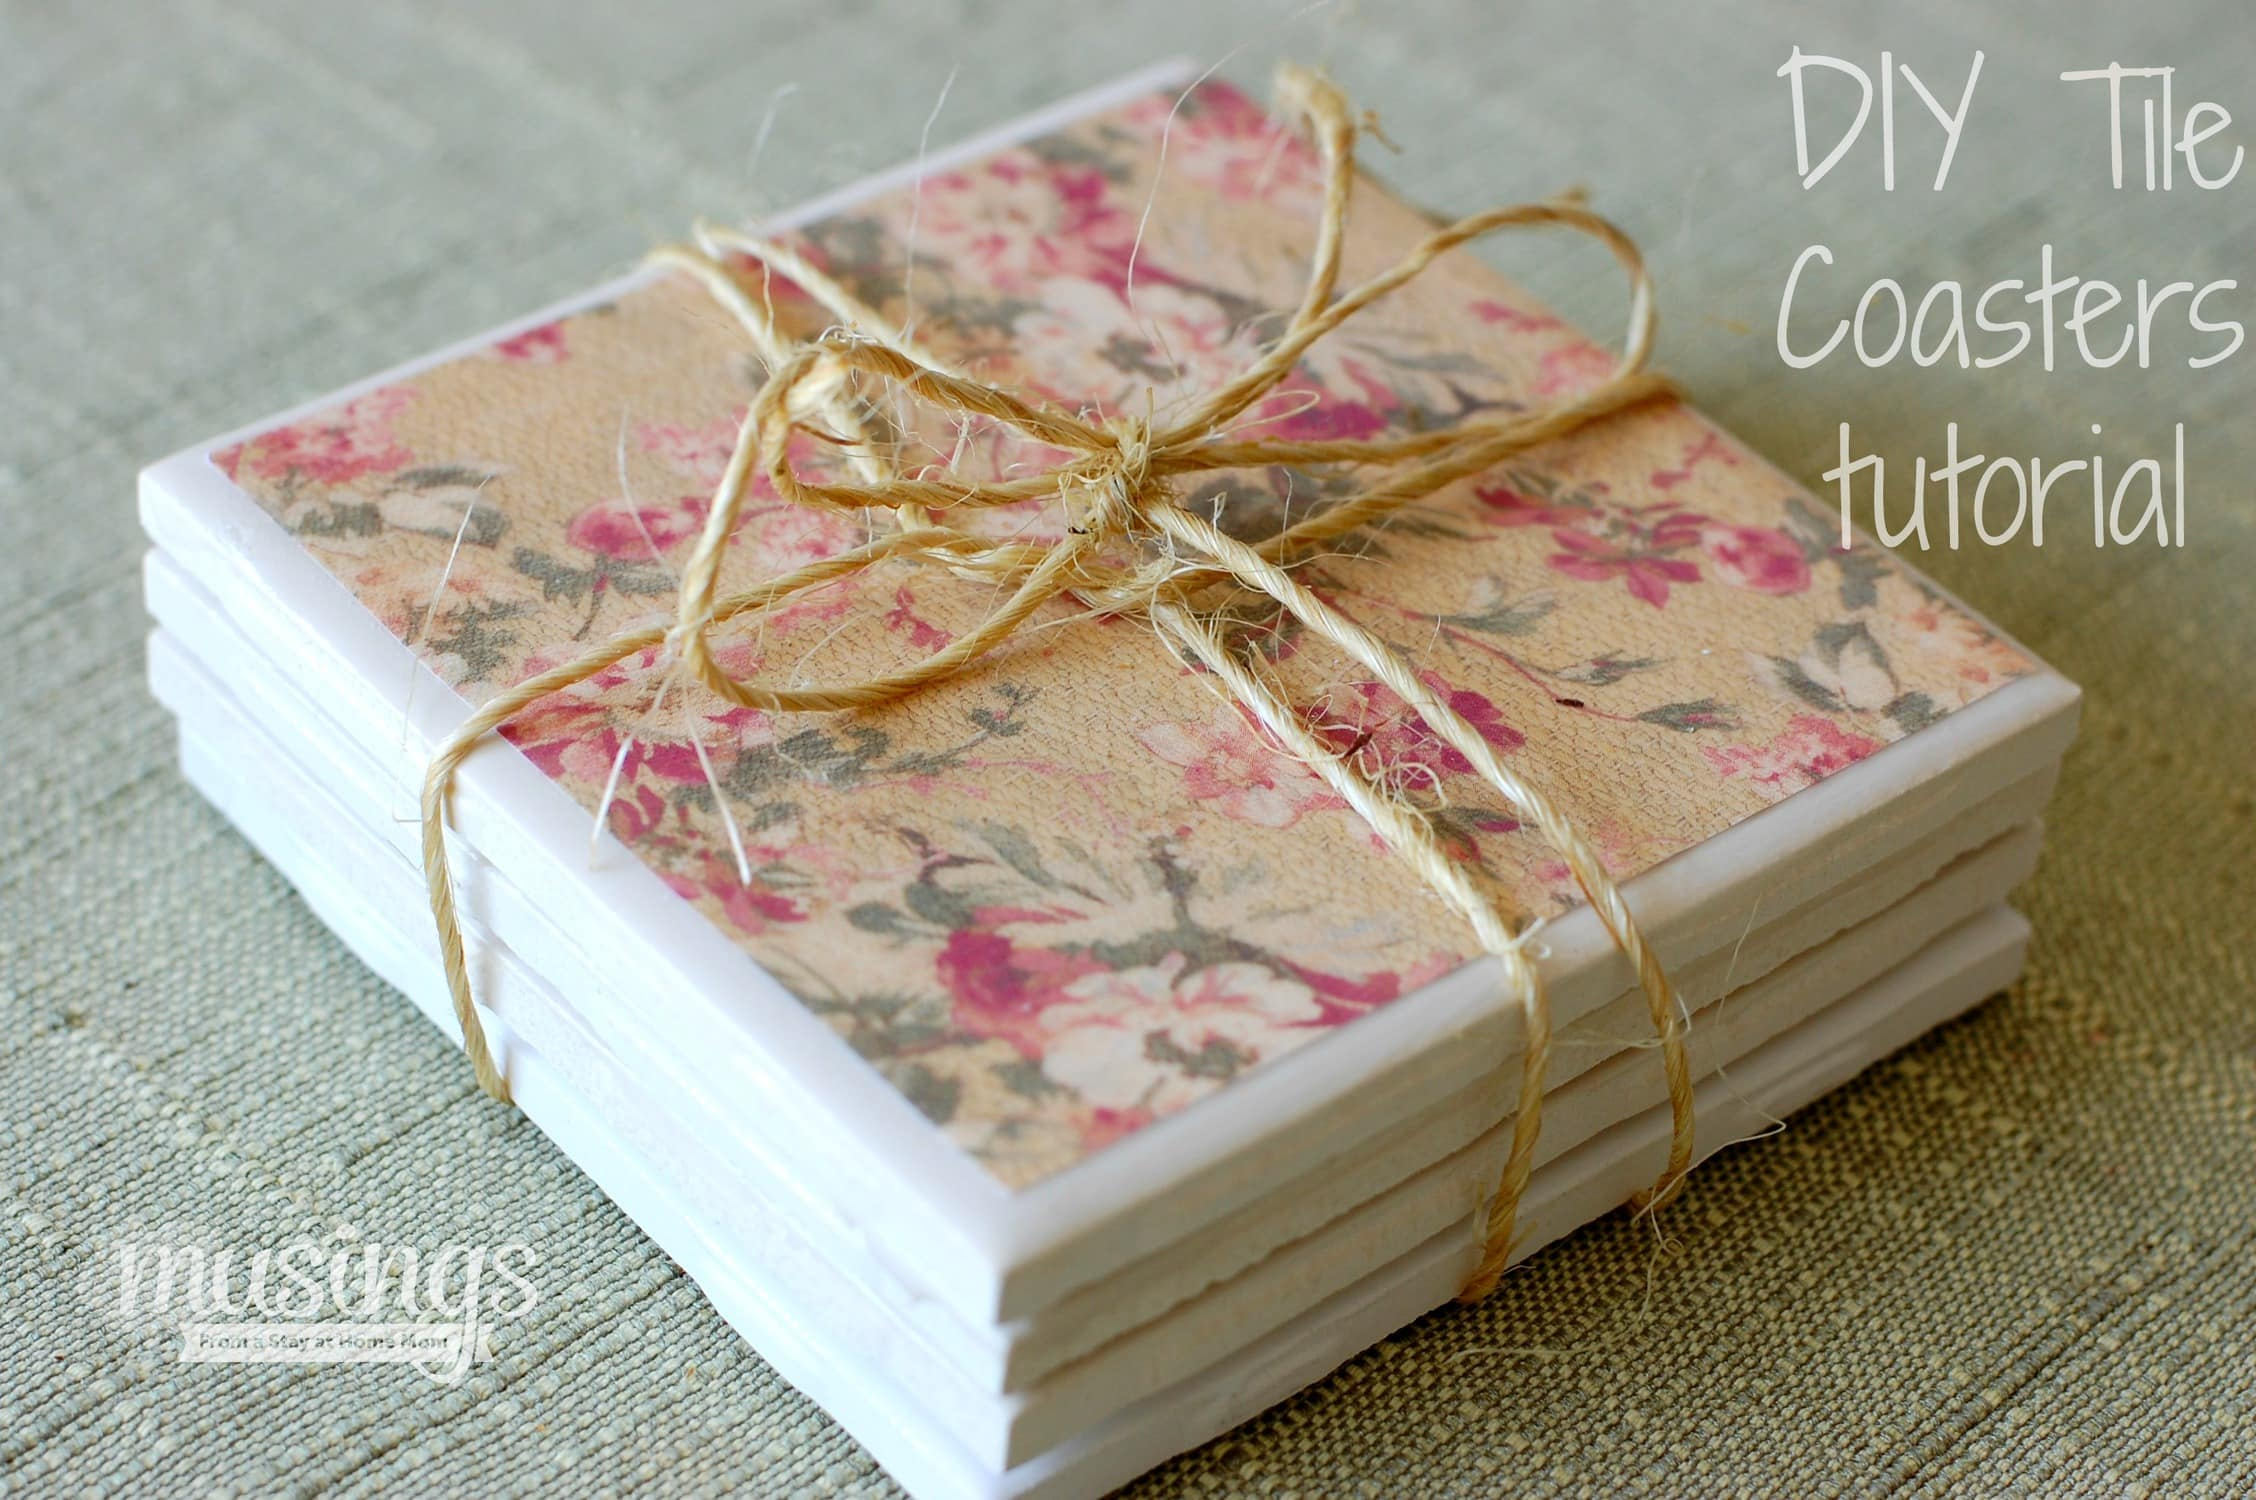 Diy tile coasters tutorial living well mom for Homemade diy